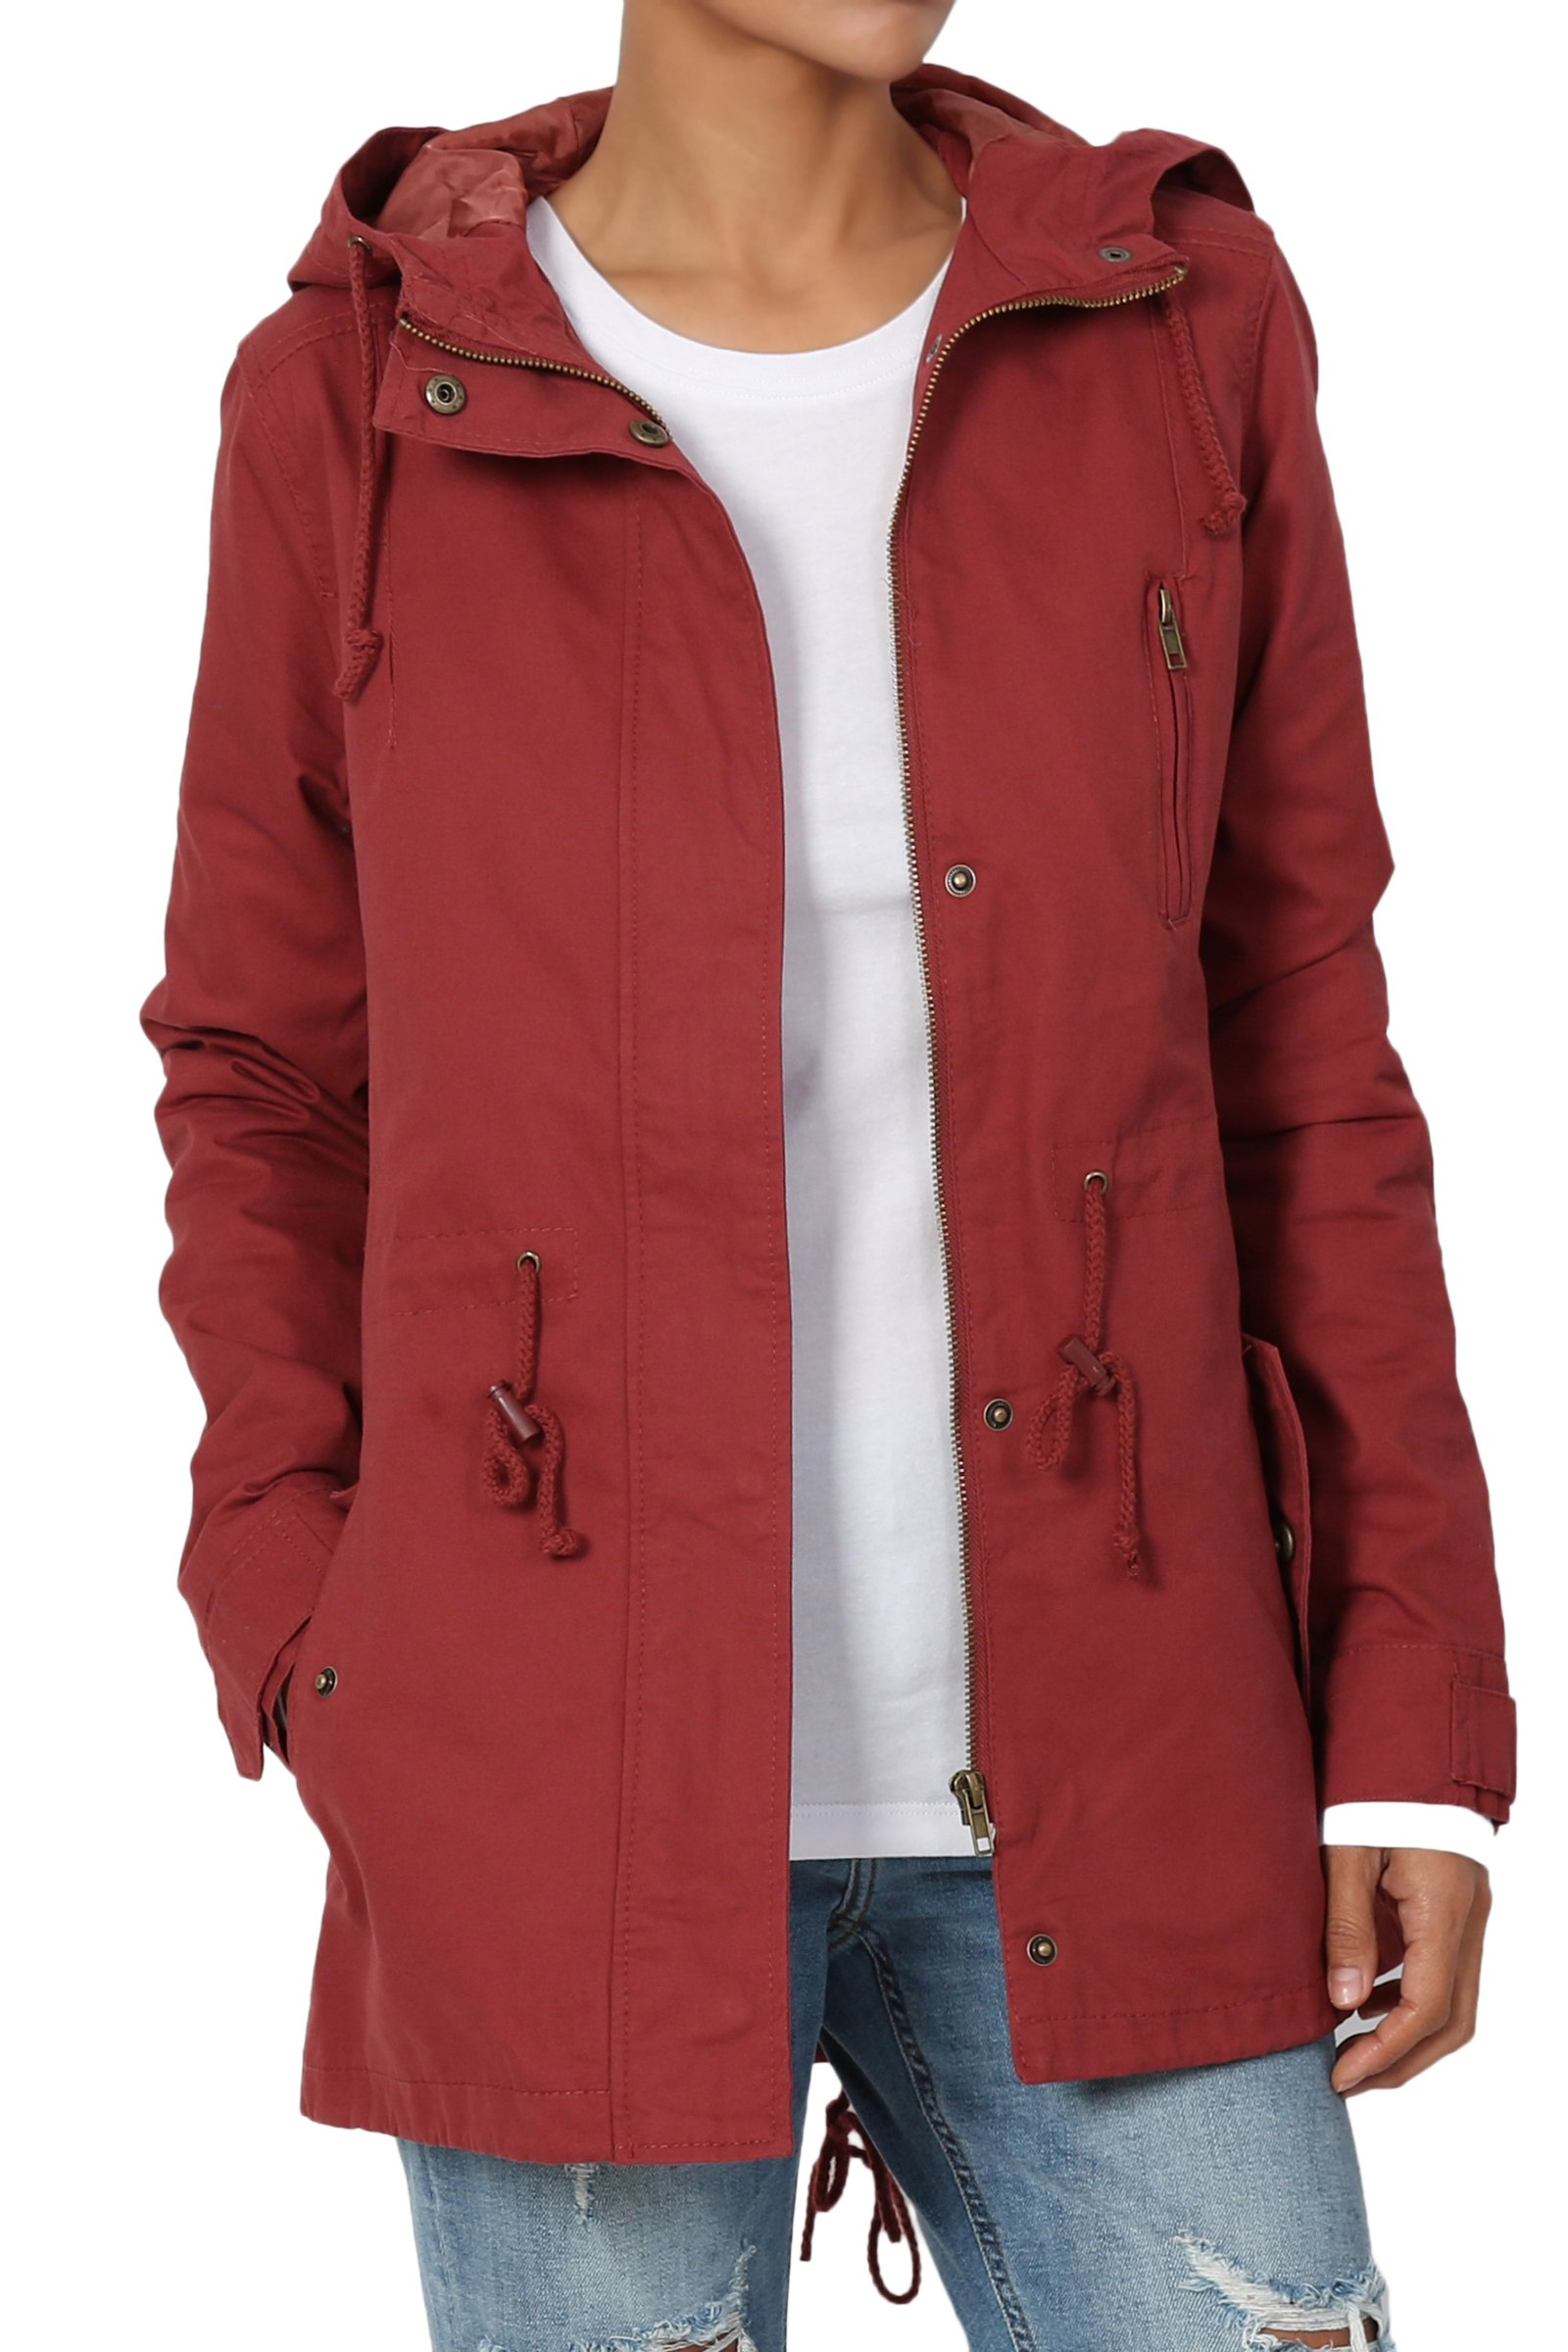 TheMogan Junior's Washed Twill Hooded Utility Anorak Jacket Marsala 2XL